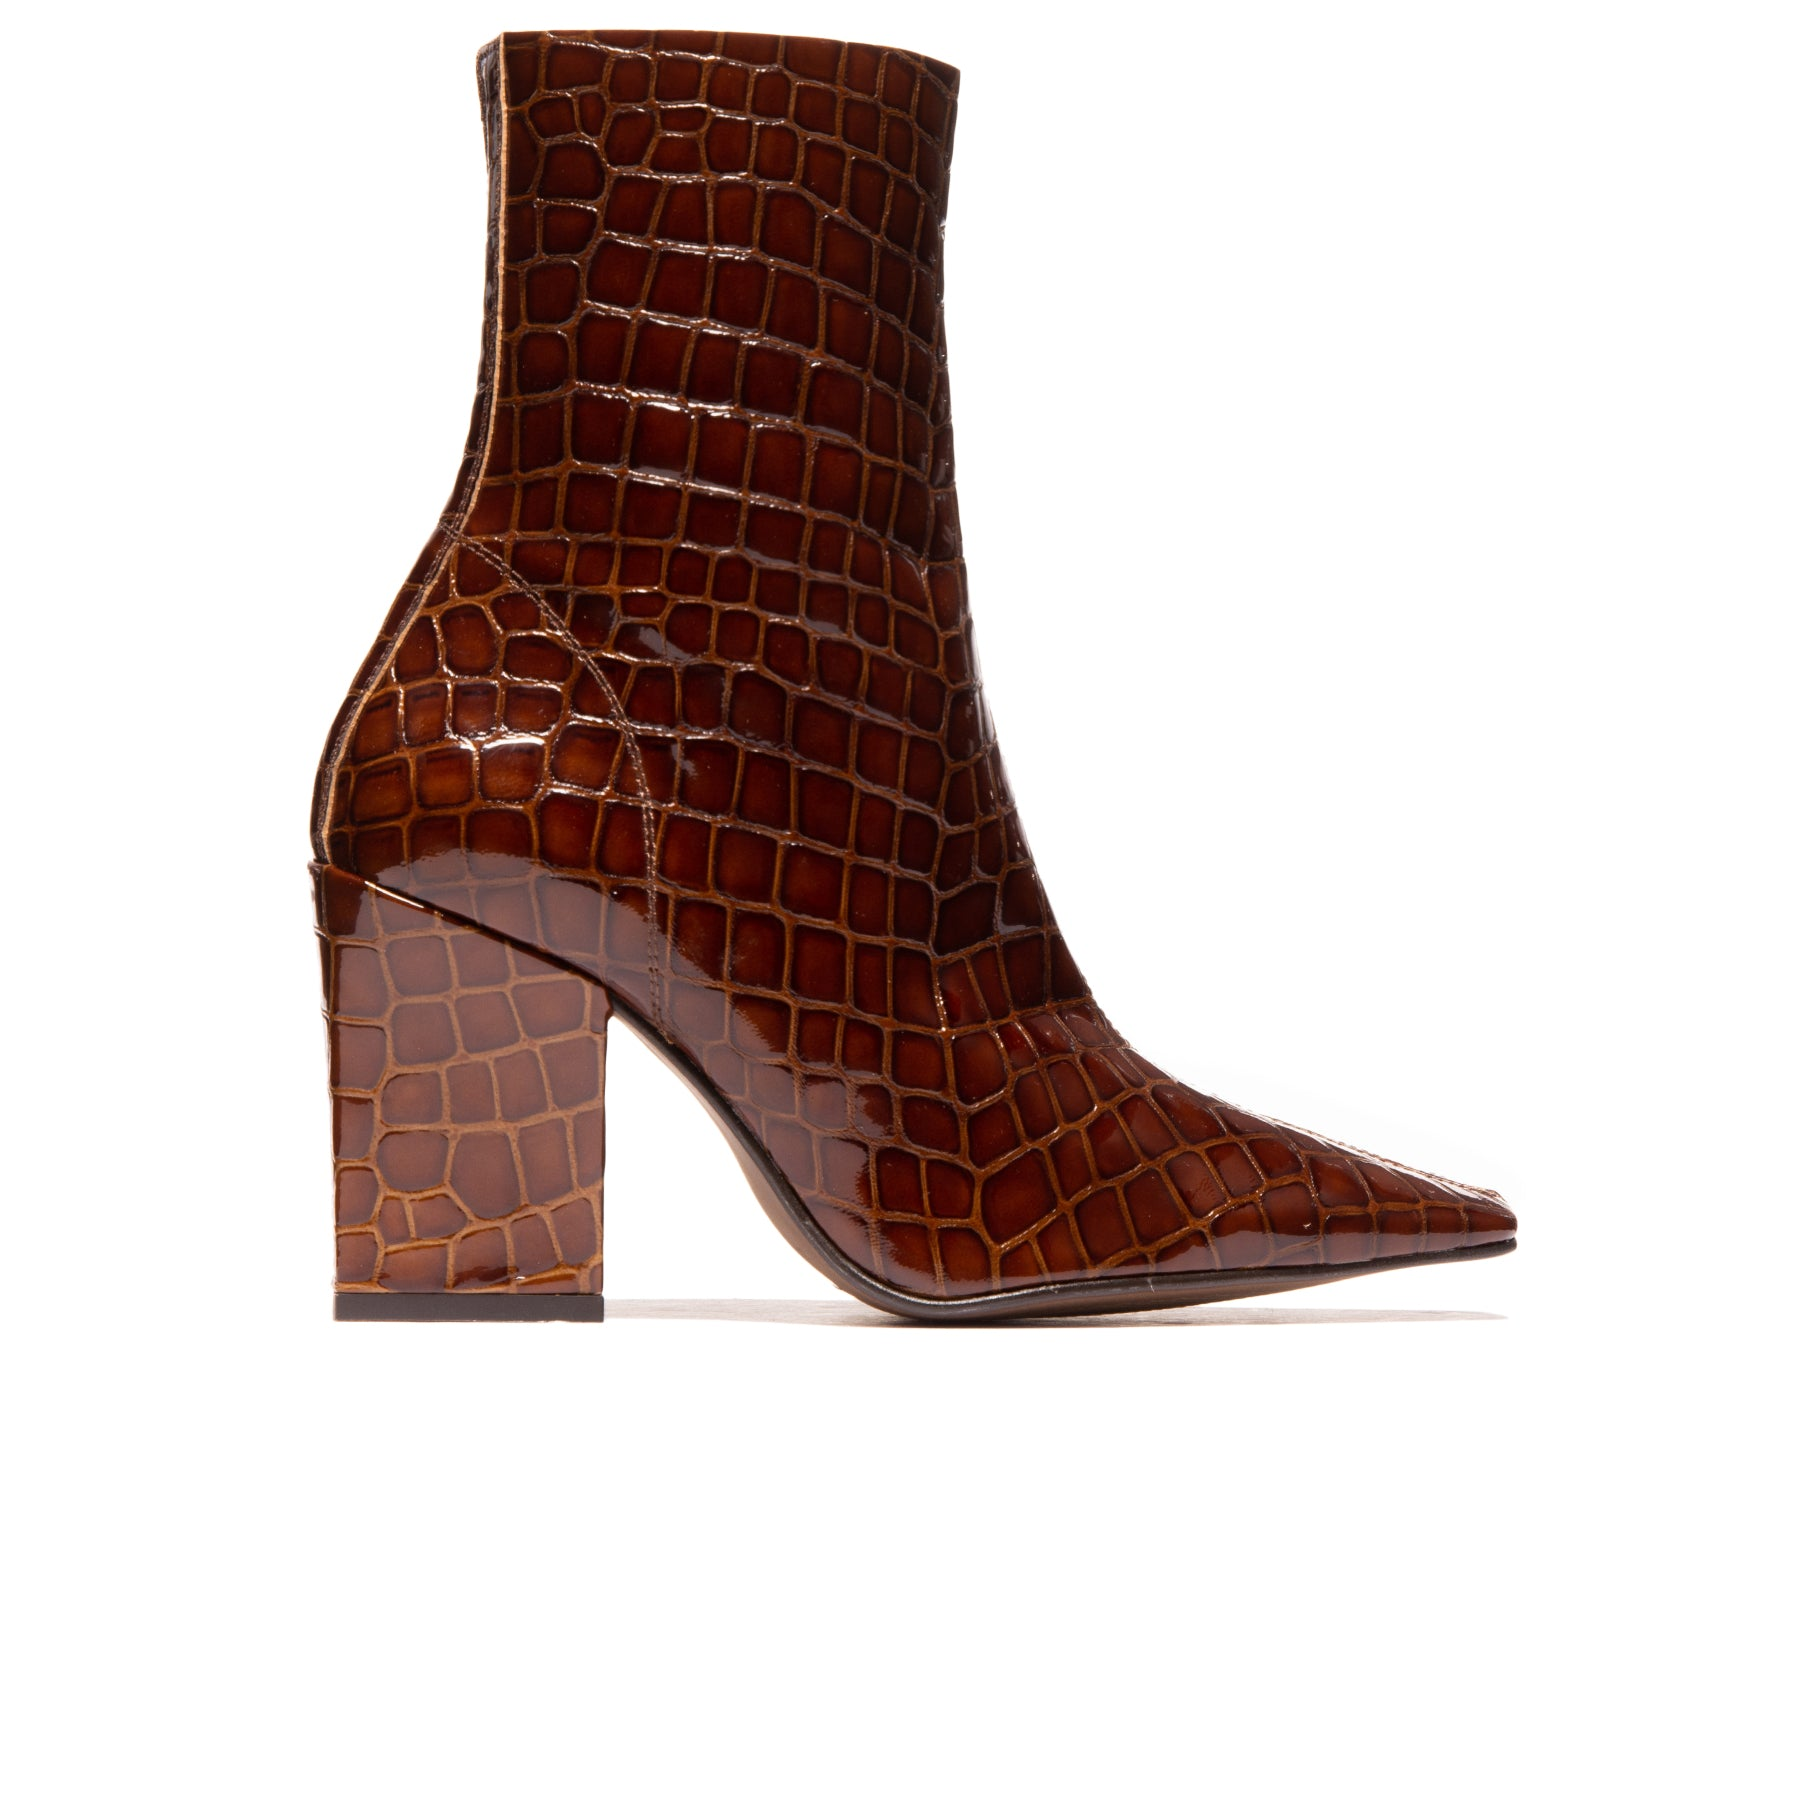 Kelso Tan Croco Leather